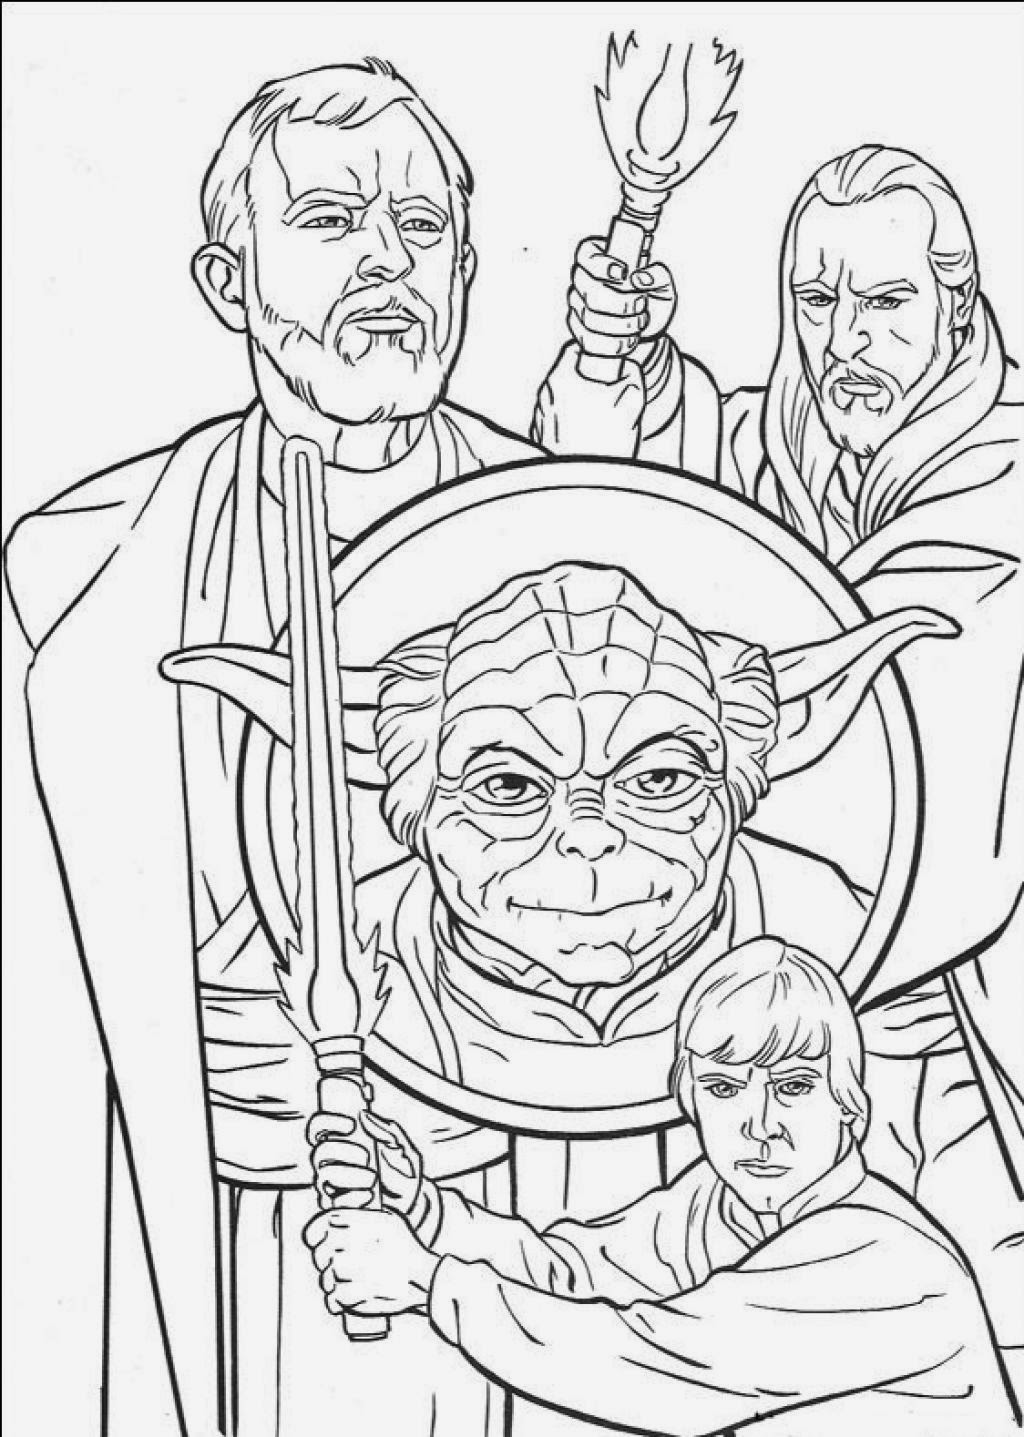 star warsa coloring pages | star wars clone wars coloring pages